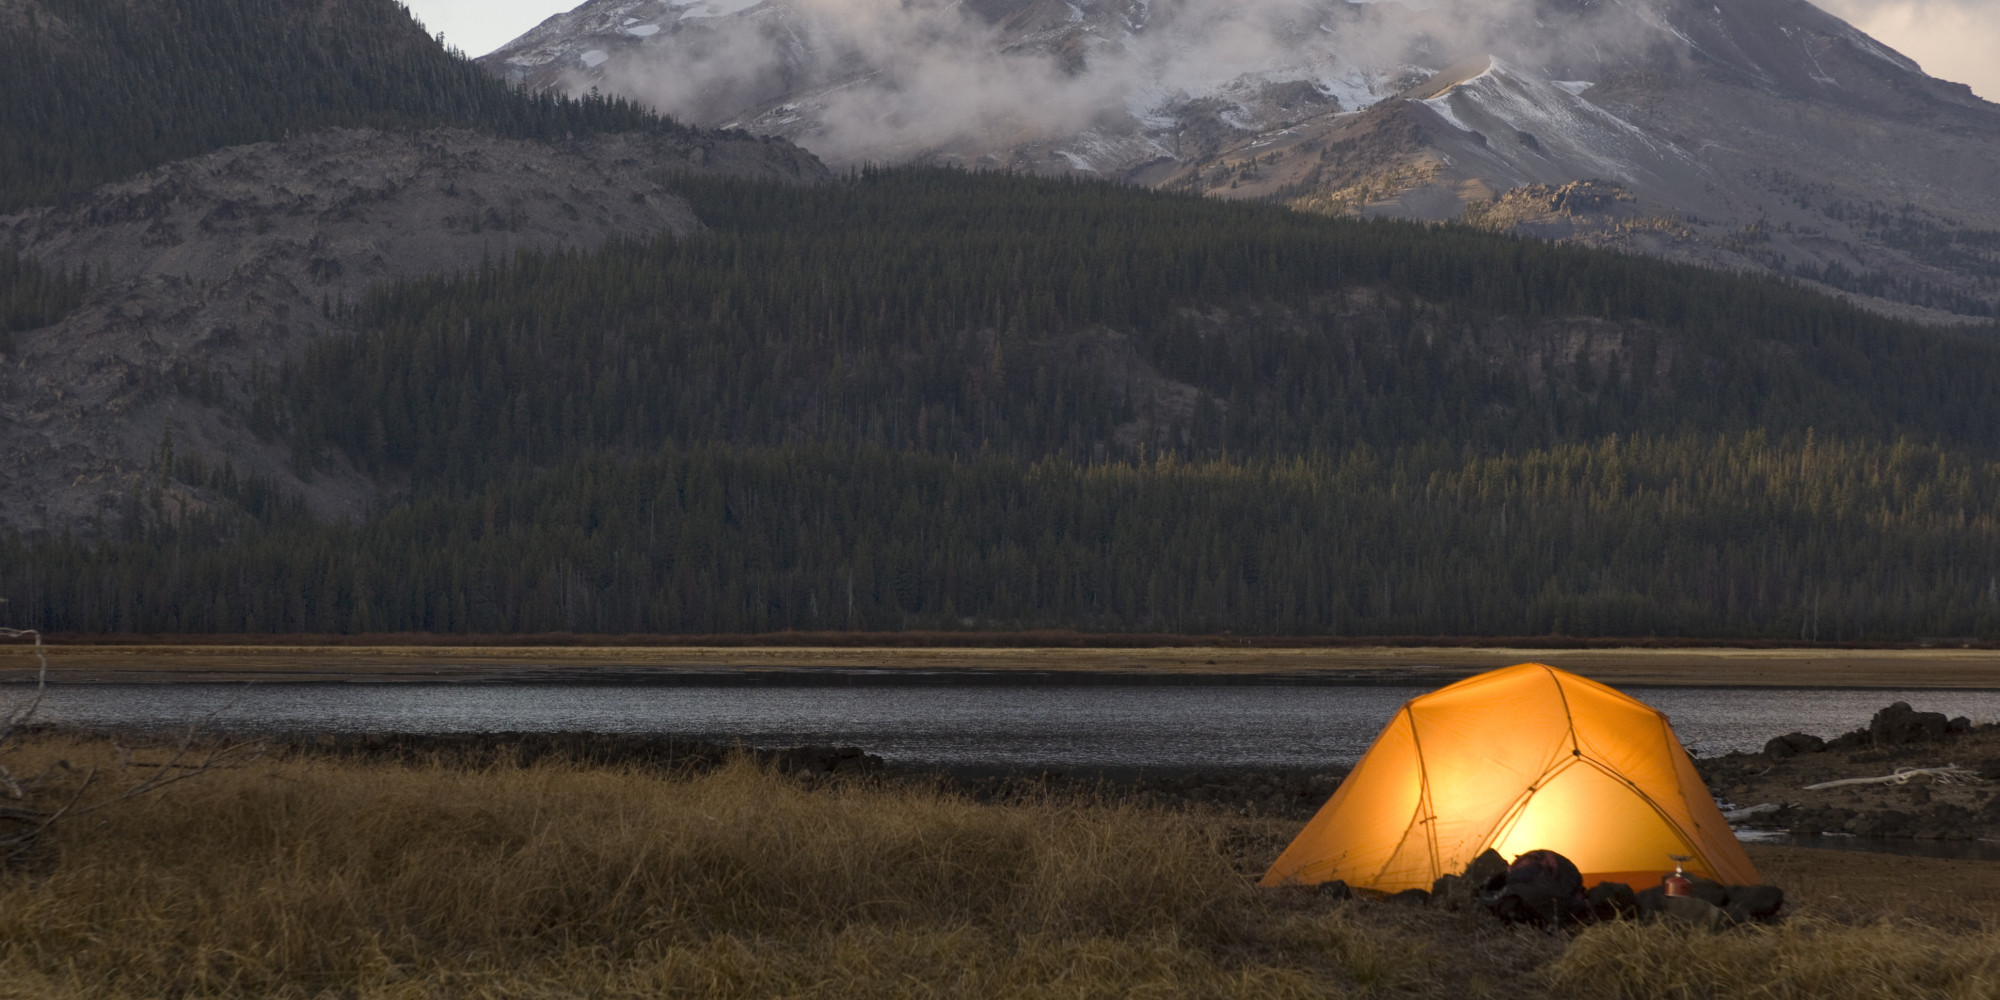 Camping It Up 11 Incredible Camping Experiences  HuffPost